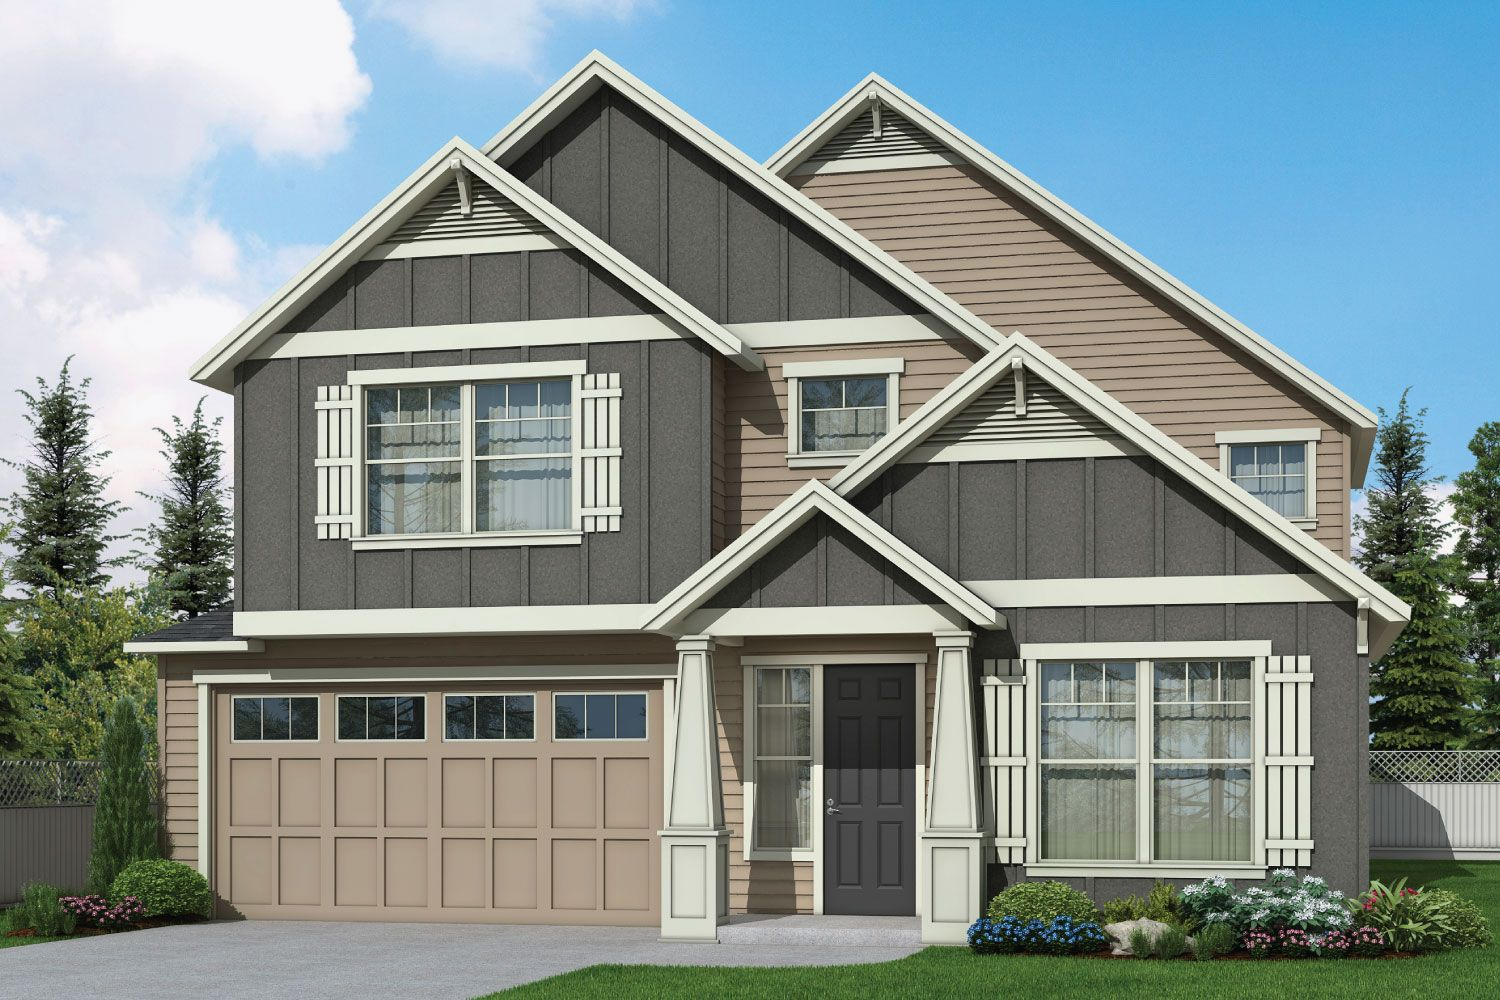 Exterior featured in the 2740 By Aho Construction I, Inc. in Yakima, WA